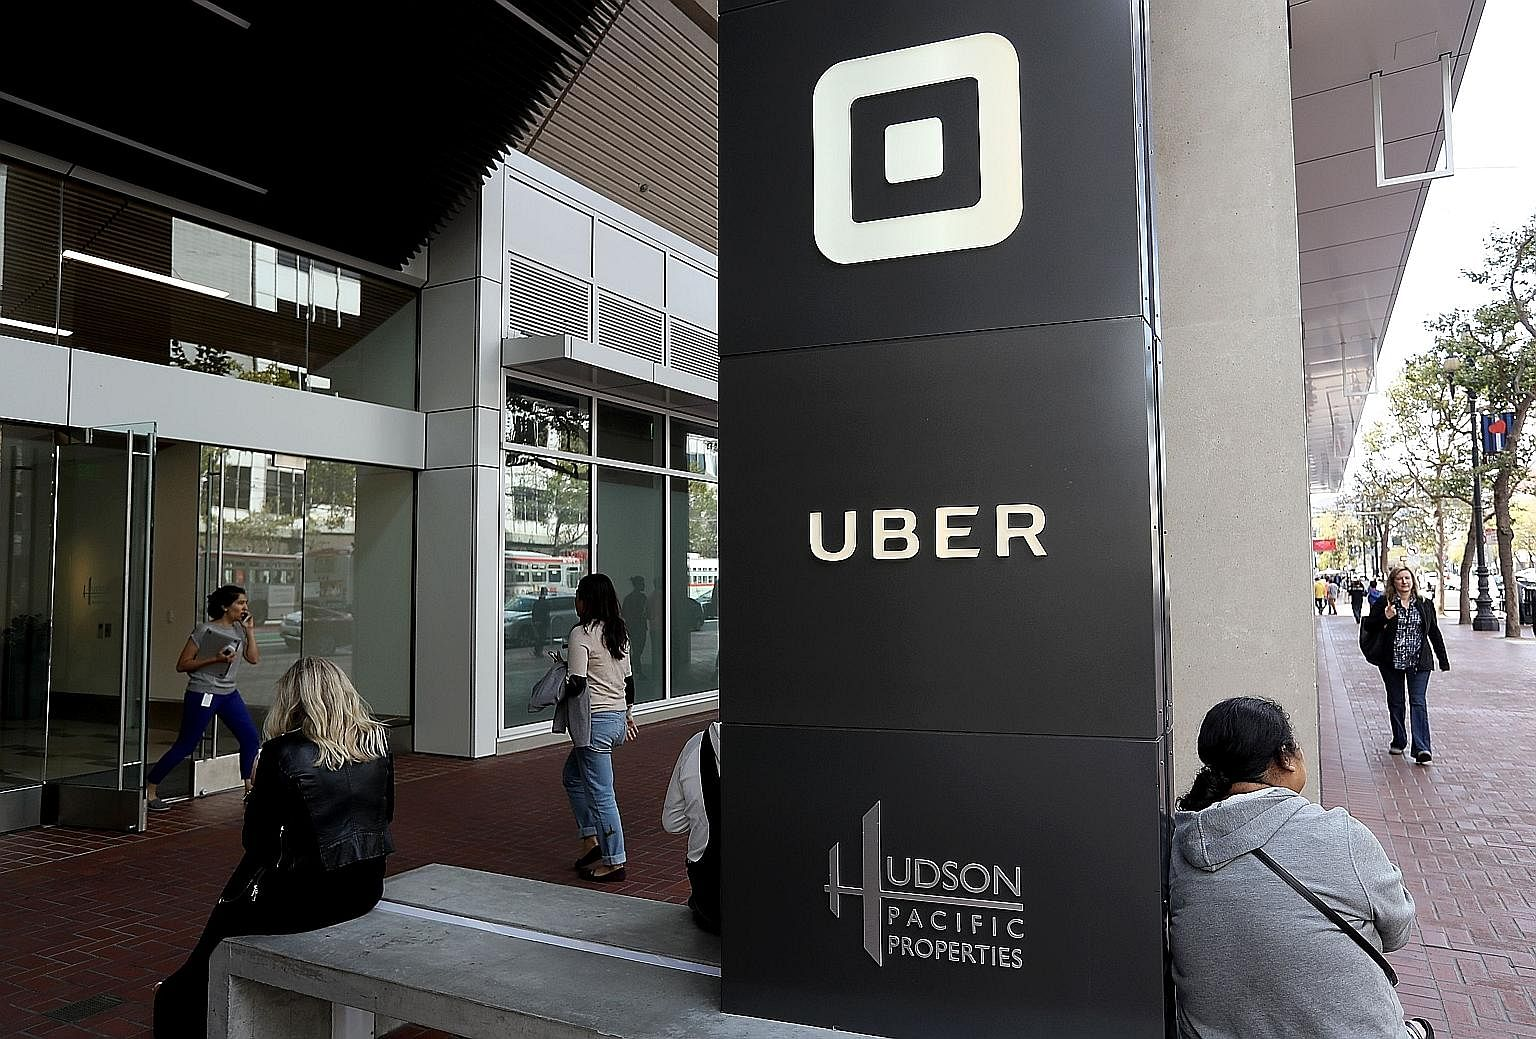 Headquartered in San Francisco (left), Uber's wildly ambitious vision to take the brand worldwide has already taken a beating with its retreat from China and Russia. Even so, it does provide a useful service for passengers, adding to their travel opt